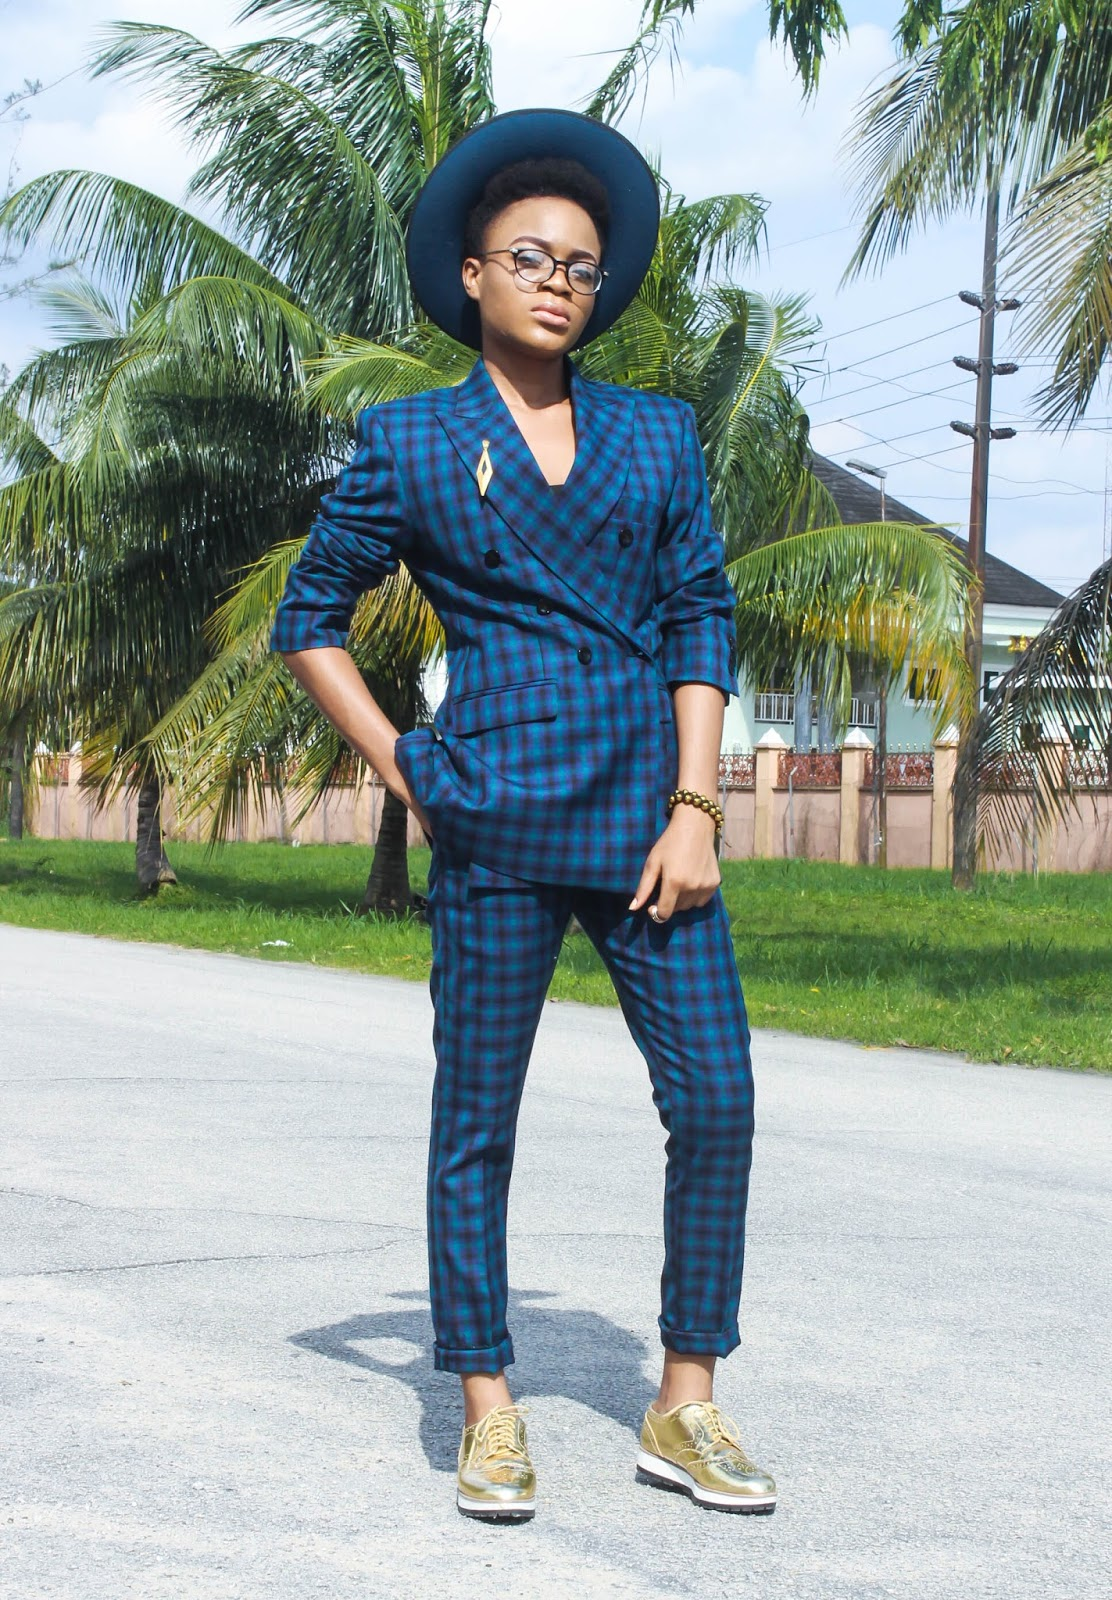 androgynous fashion blog, angrogynous clothing, tomboy chic outfit ideas